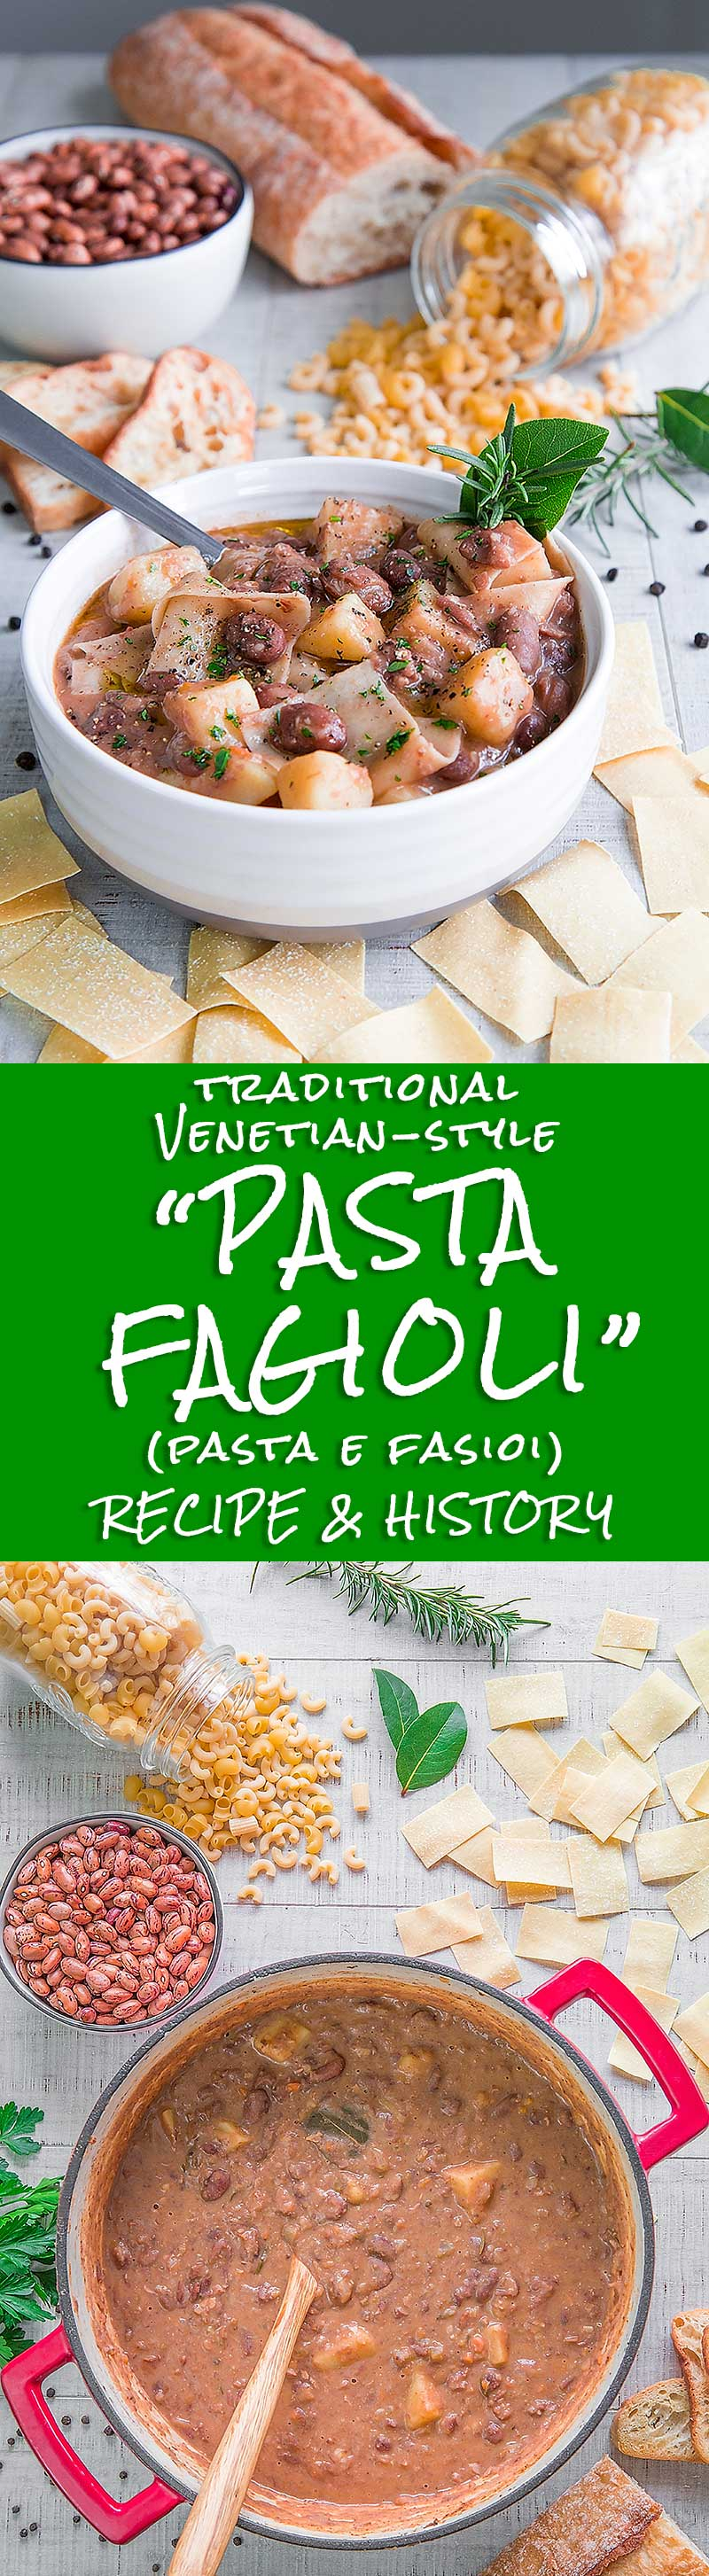 PASTA FAGIOLI VENETIAN-STYLE recipe & history - all you need to know!